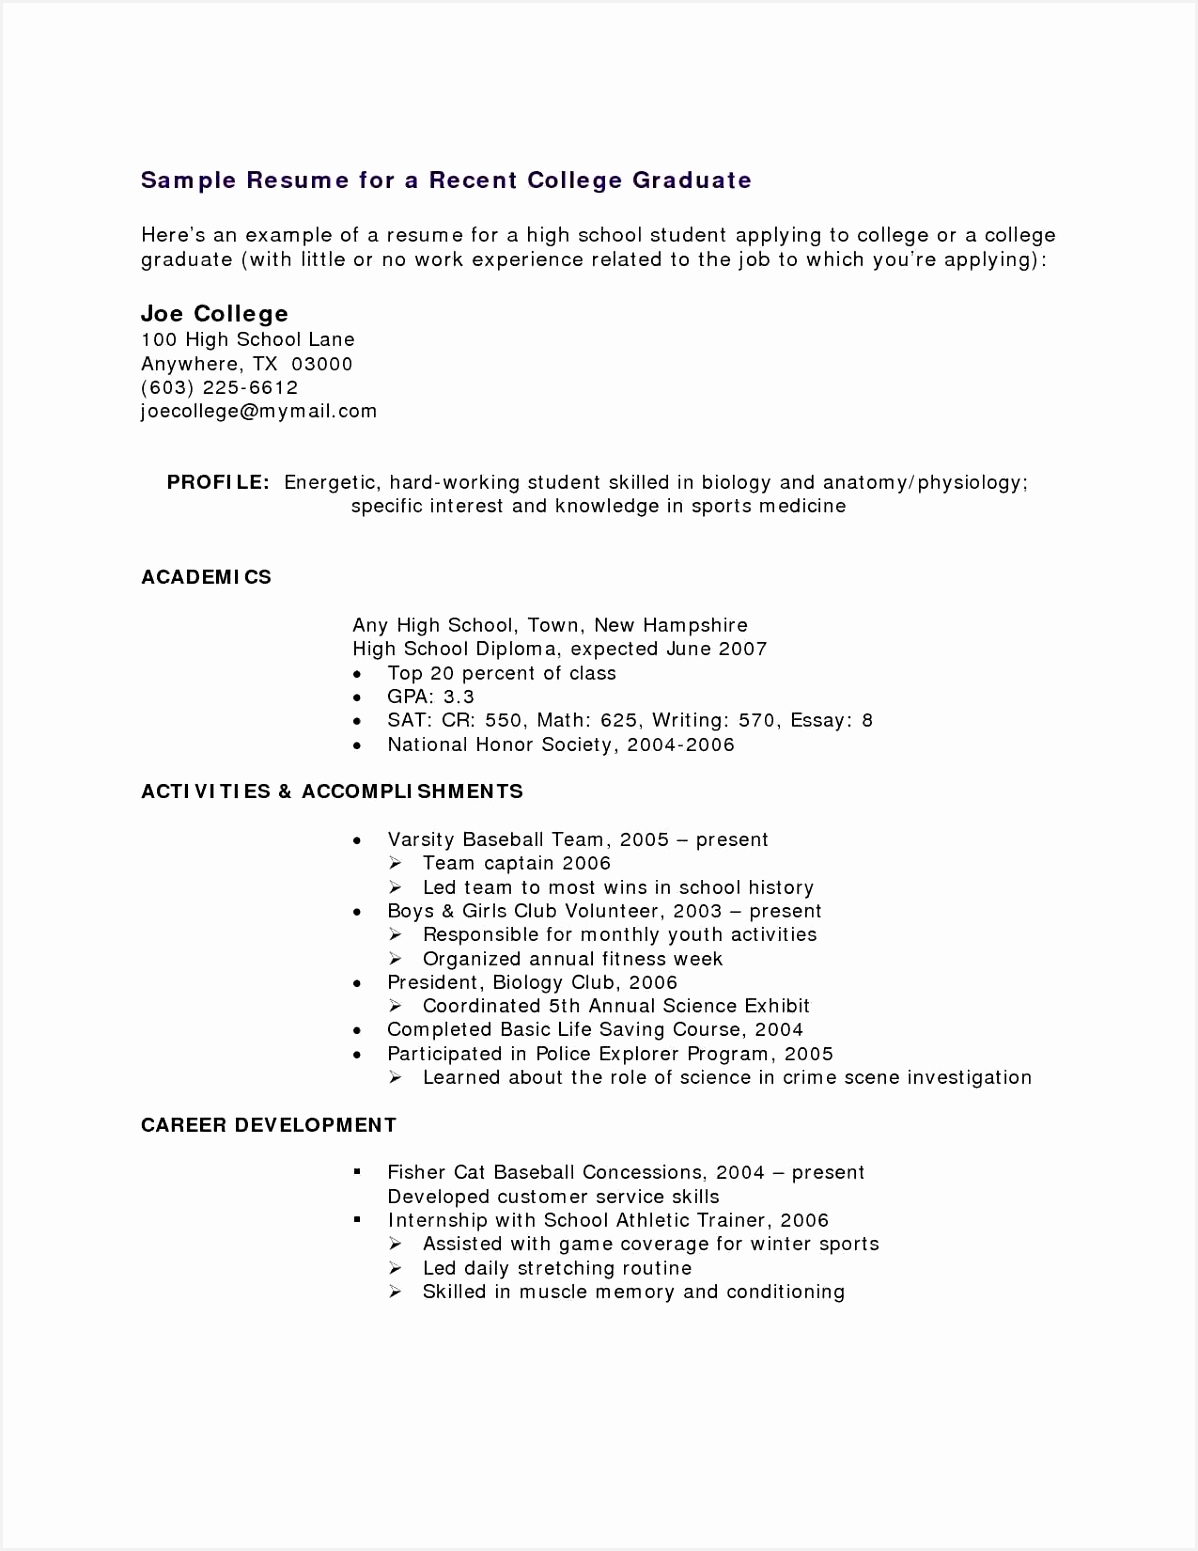 Resume Samples for Graduate School Gchle Inspirational Student Affairs Resume Samples Best Resume Examples for Jobs with Of Resume Samples for Graduate School V2ige Luxury 18 Academic Resume Template for Grad School Examples Graduate Resume